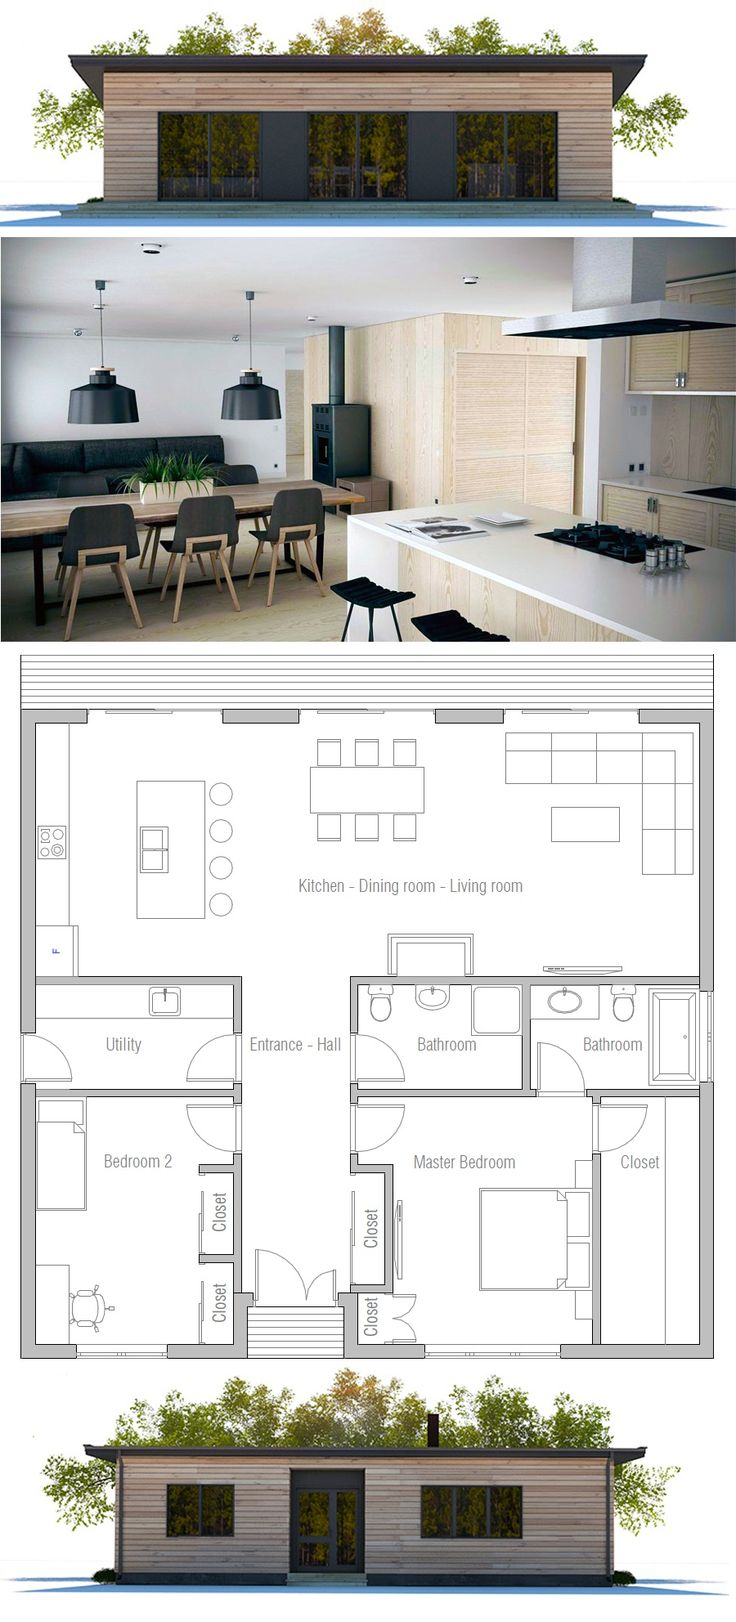 Best 25 2 bedroom house plans ideas that you will like on Bedroom plan design